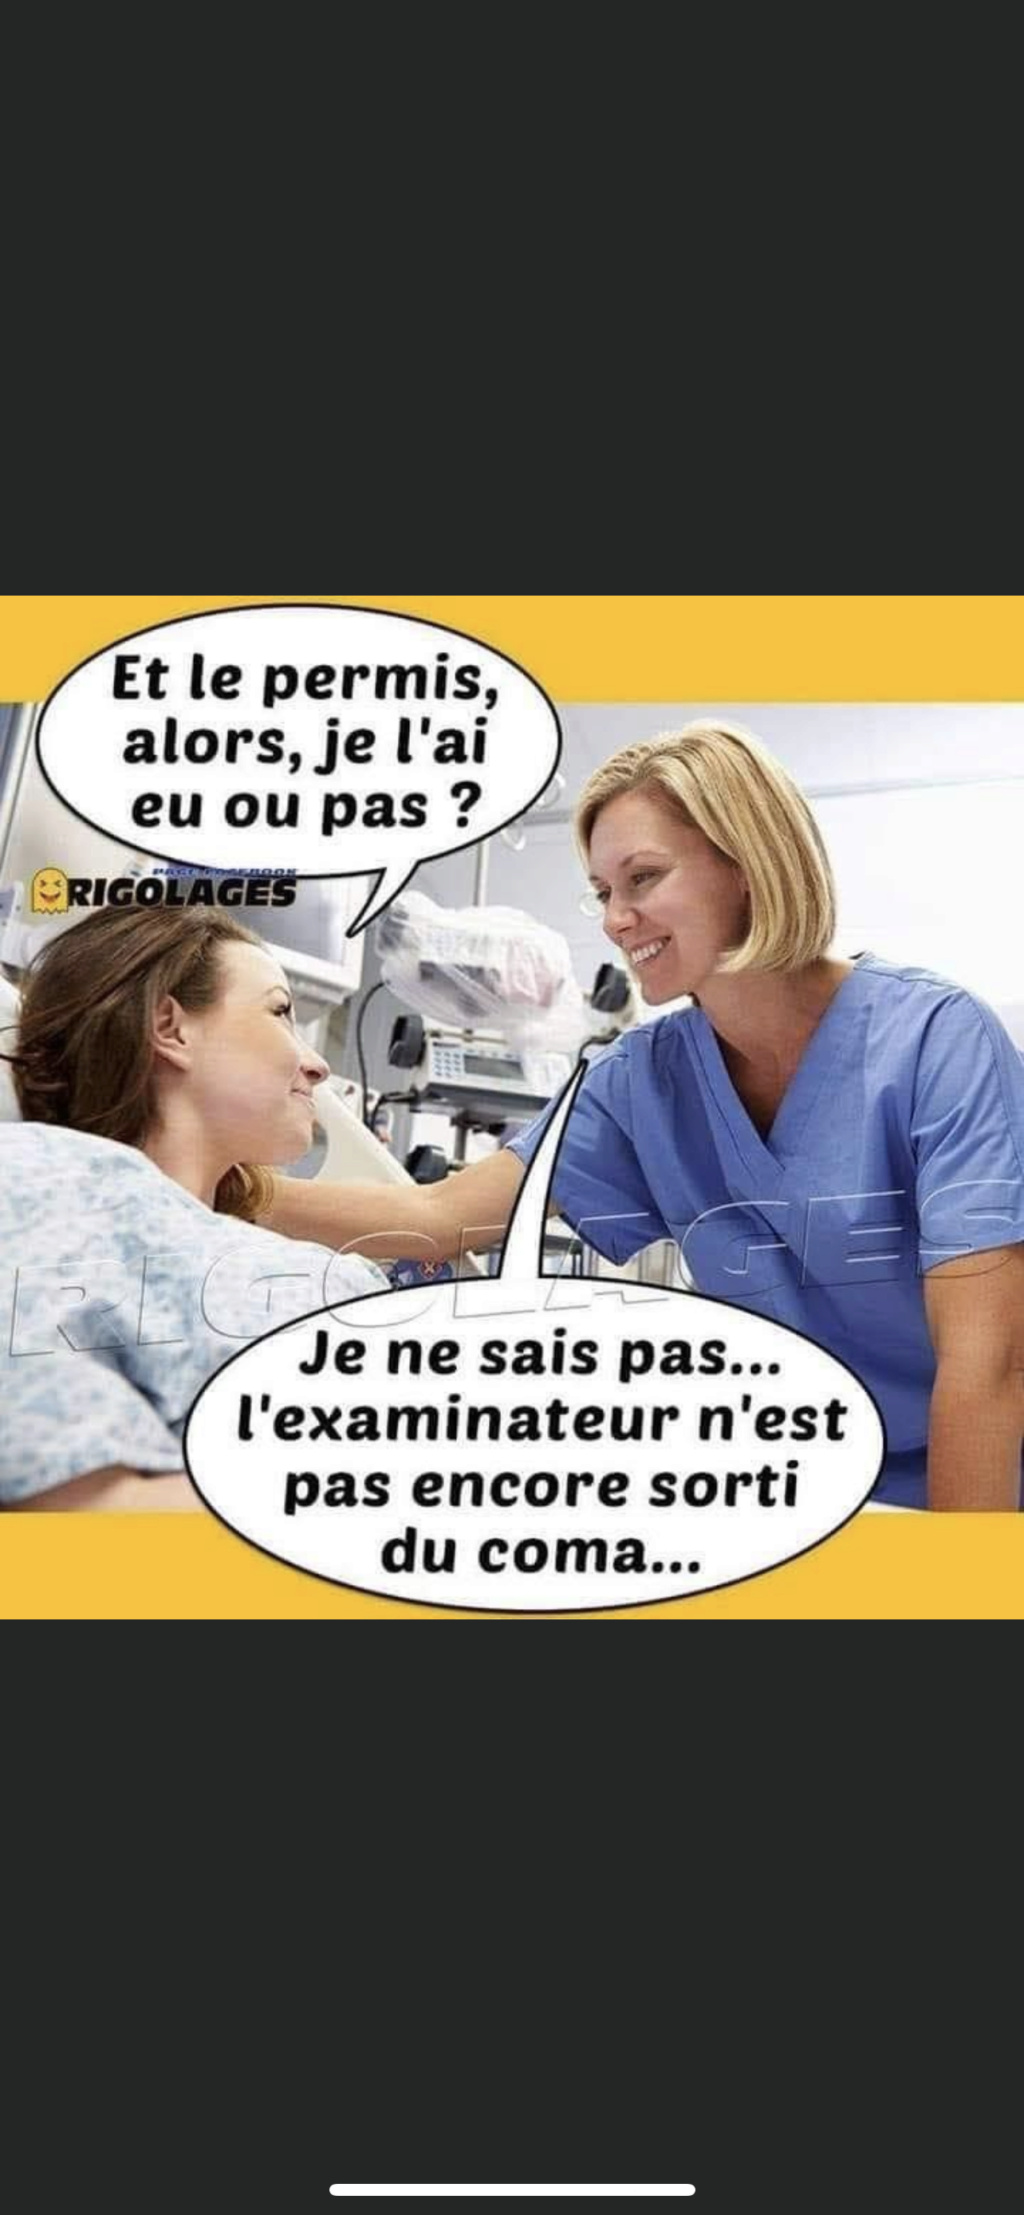 humour - Page 37 8c118410